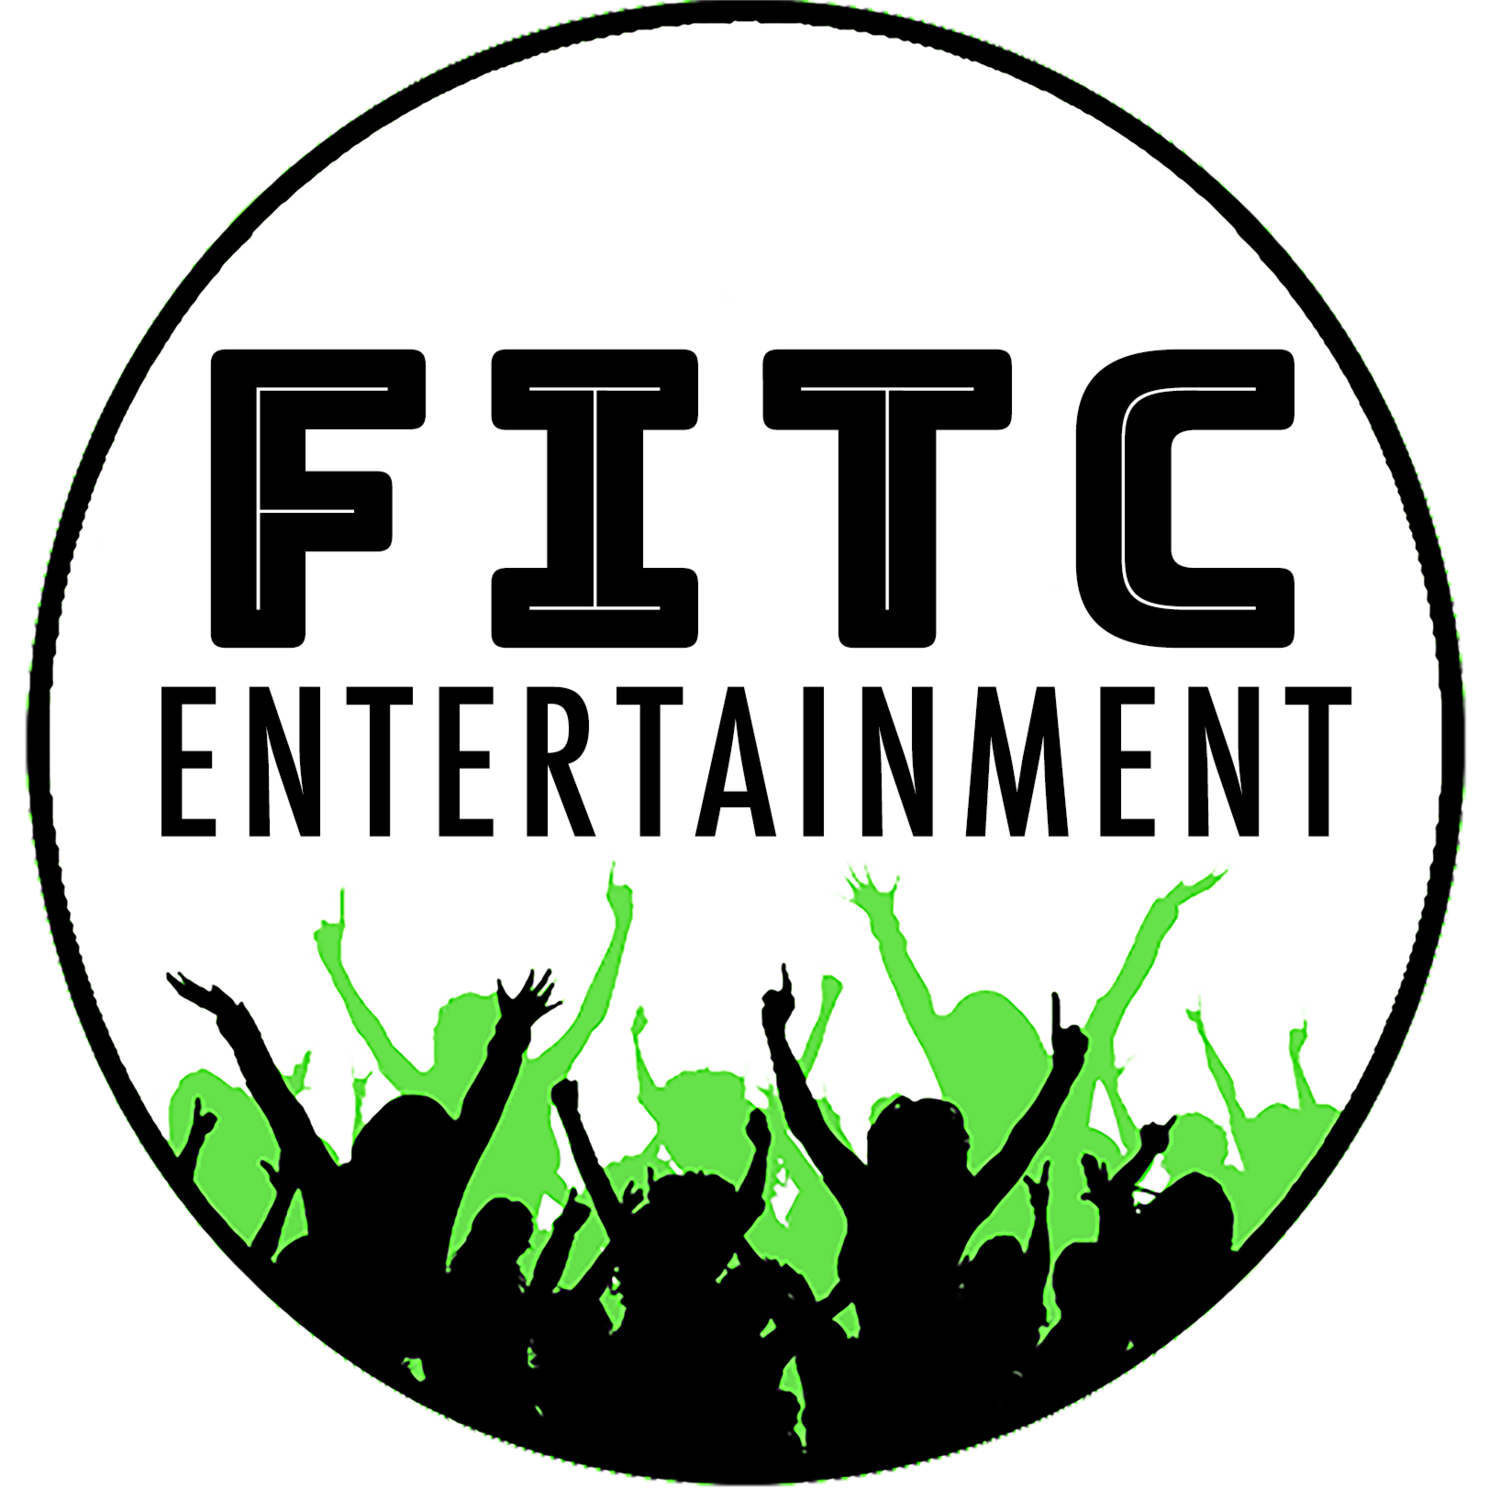 FITC Entertainment